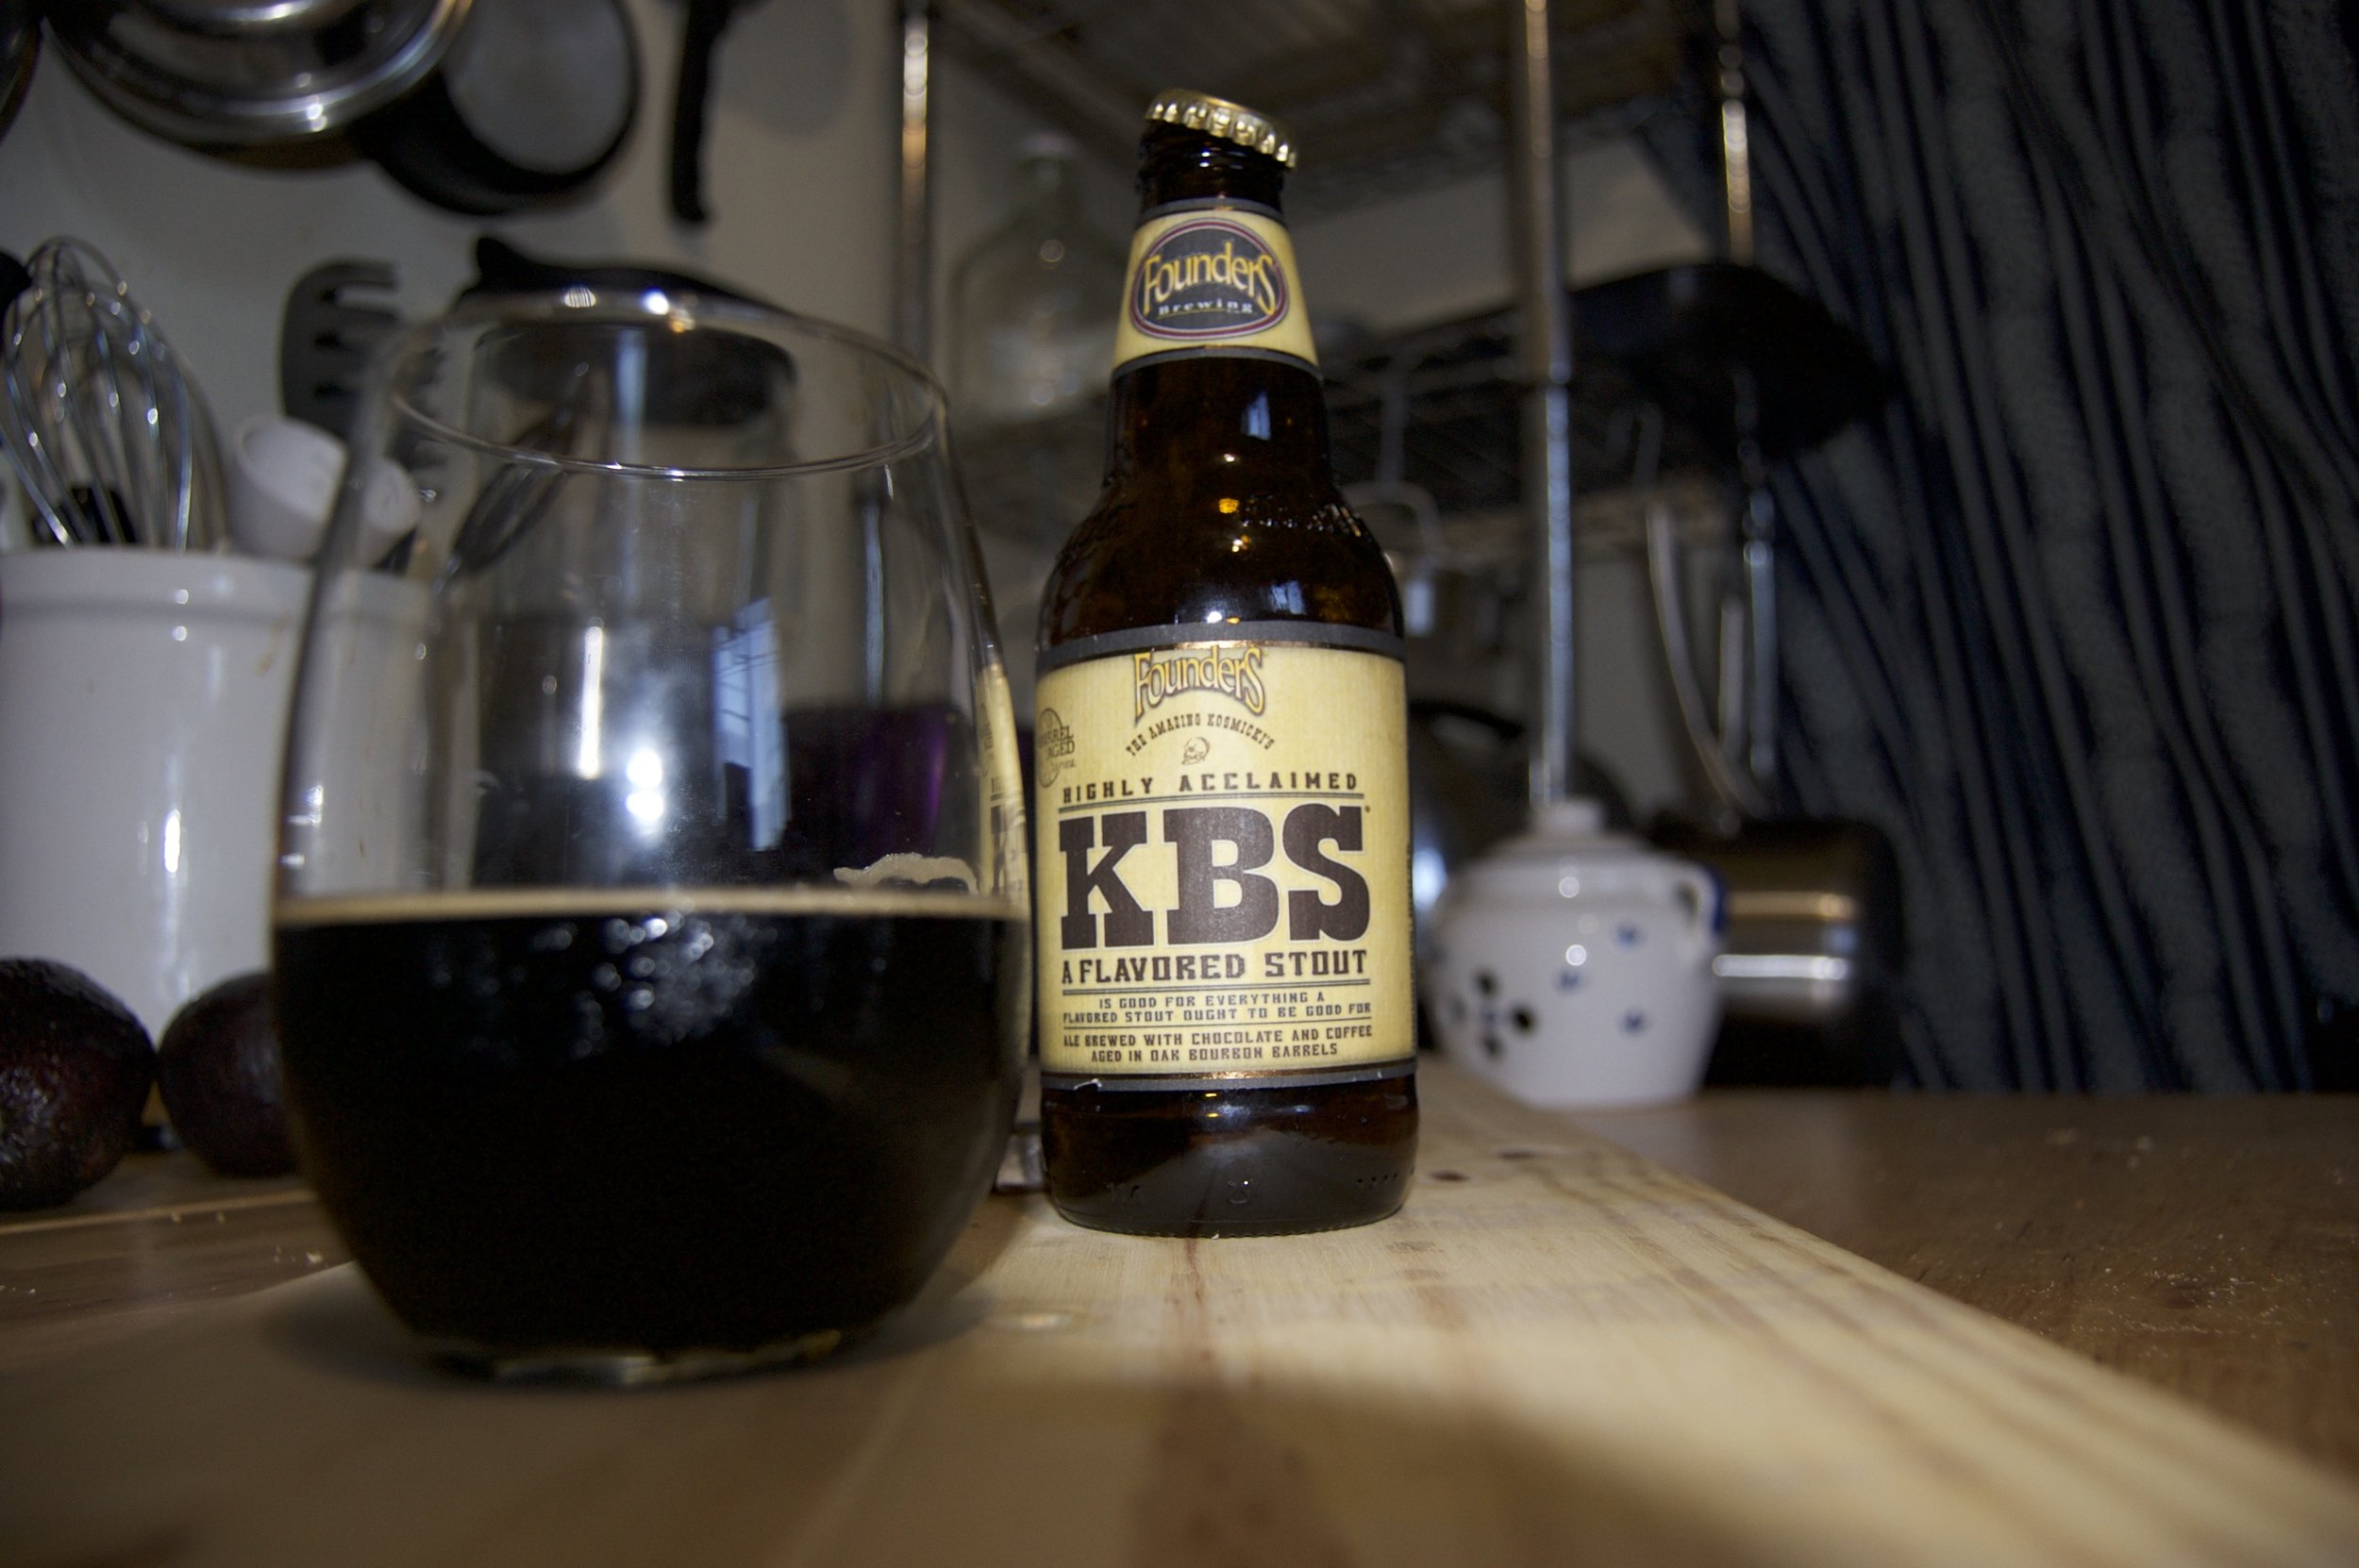 KBS Stout - This stout is epic. Rare and rich. It's thick, as a breakfast stout tends to be.It reminds me of dark storm clouds, ready to drop sweet sweet rain after weeks of horrible dry sunshine. I want to sit on a wood porch, in a thunderstorm, sip on this while reading comic books.I decided to take it's temperature as I drank it. I noticed that when it became slightly warm it's flavors became more bold. At 56.8 it really shined. That's a good beer.